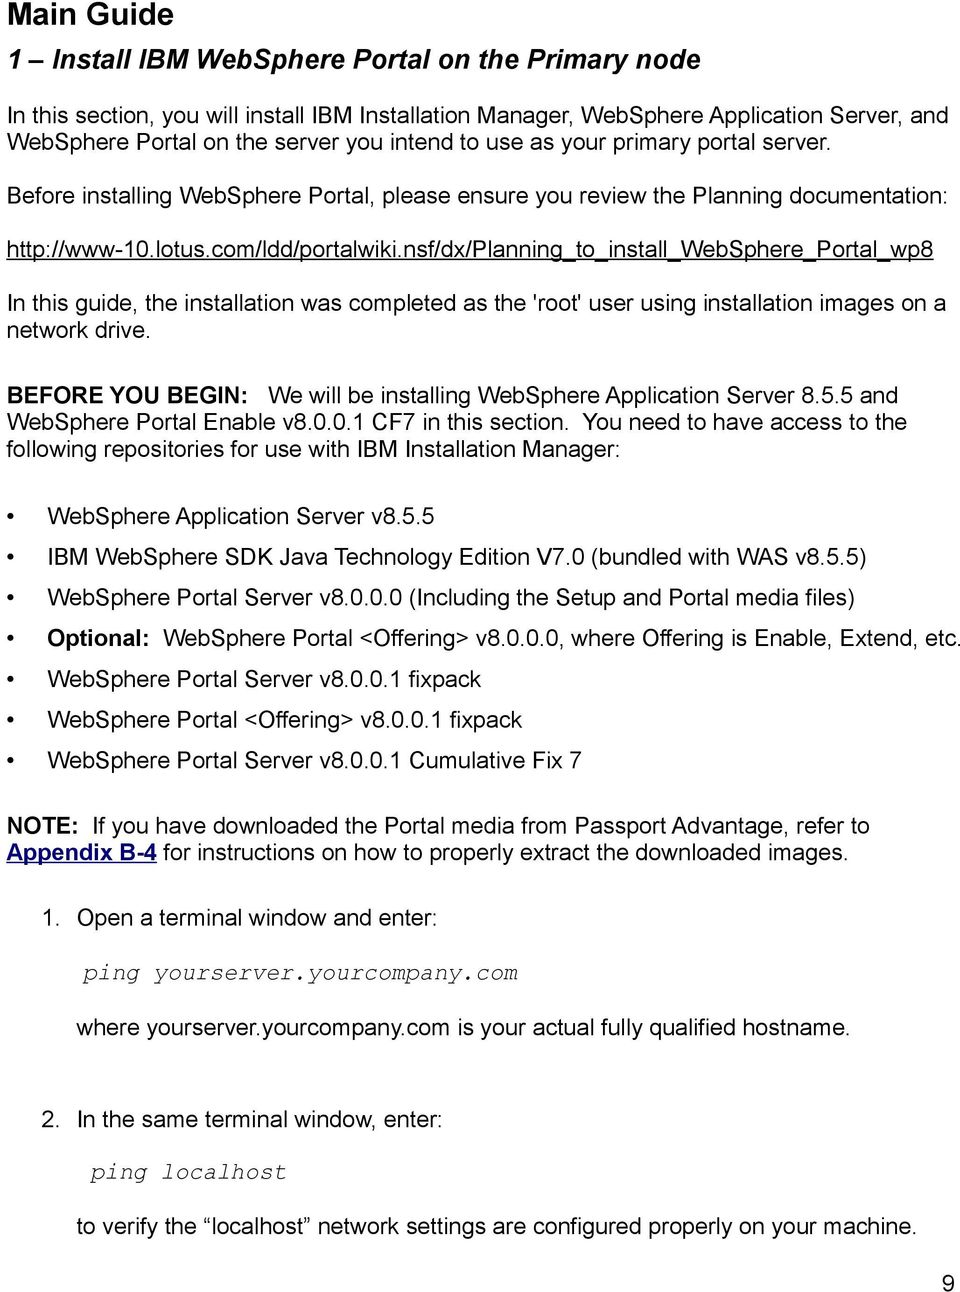 nsf/dx/planning_to_install_websphere_portal_wp8 In this guide, the installation was completed as the 'root' user using installation images on a network drive.